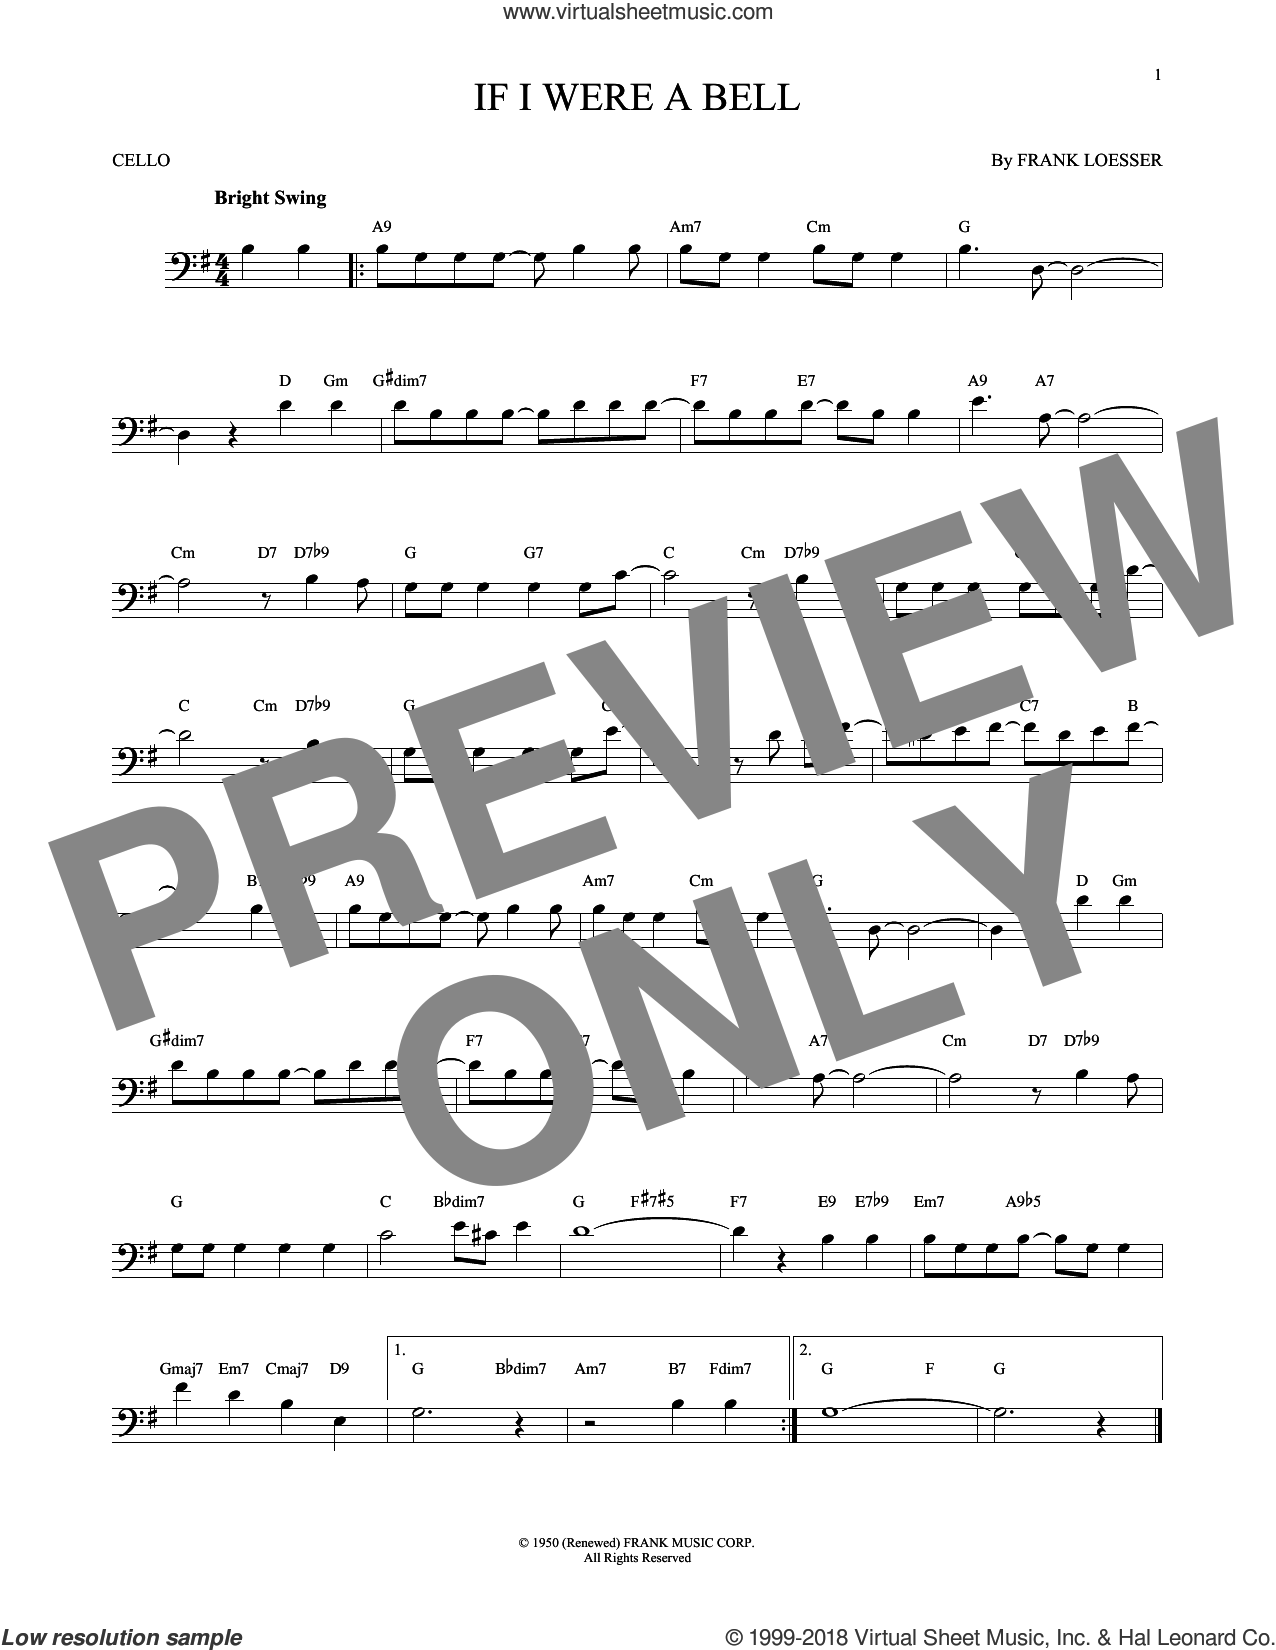 If I Were A Bell sheet music for cello solo by Frank Loesser, intermediate skill level